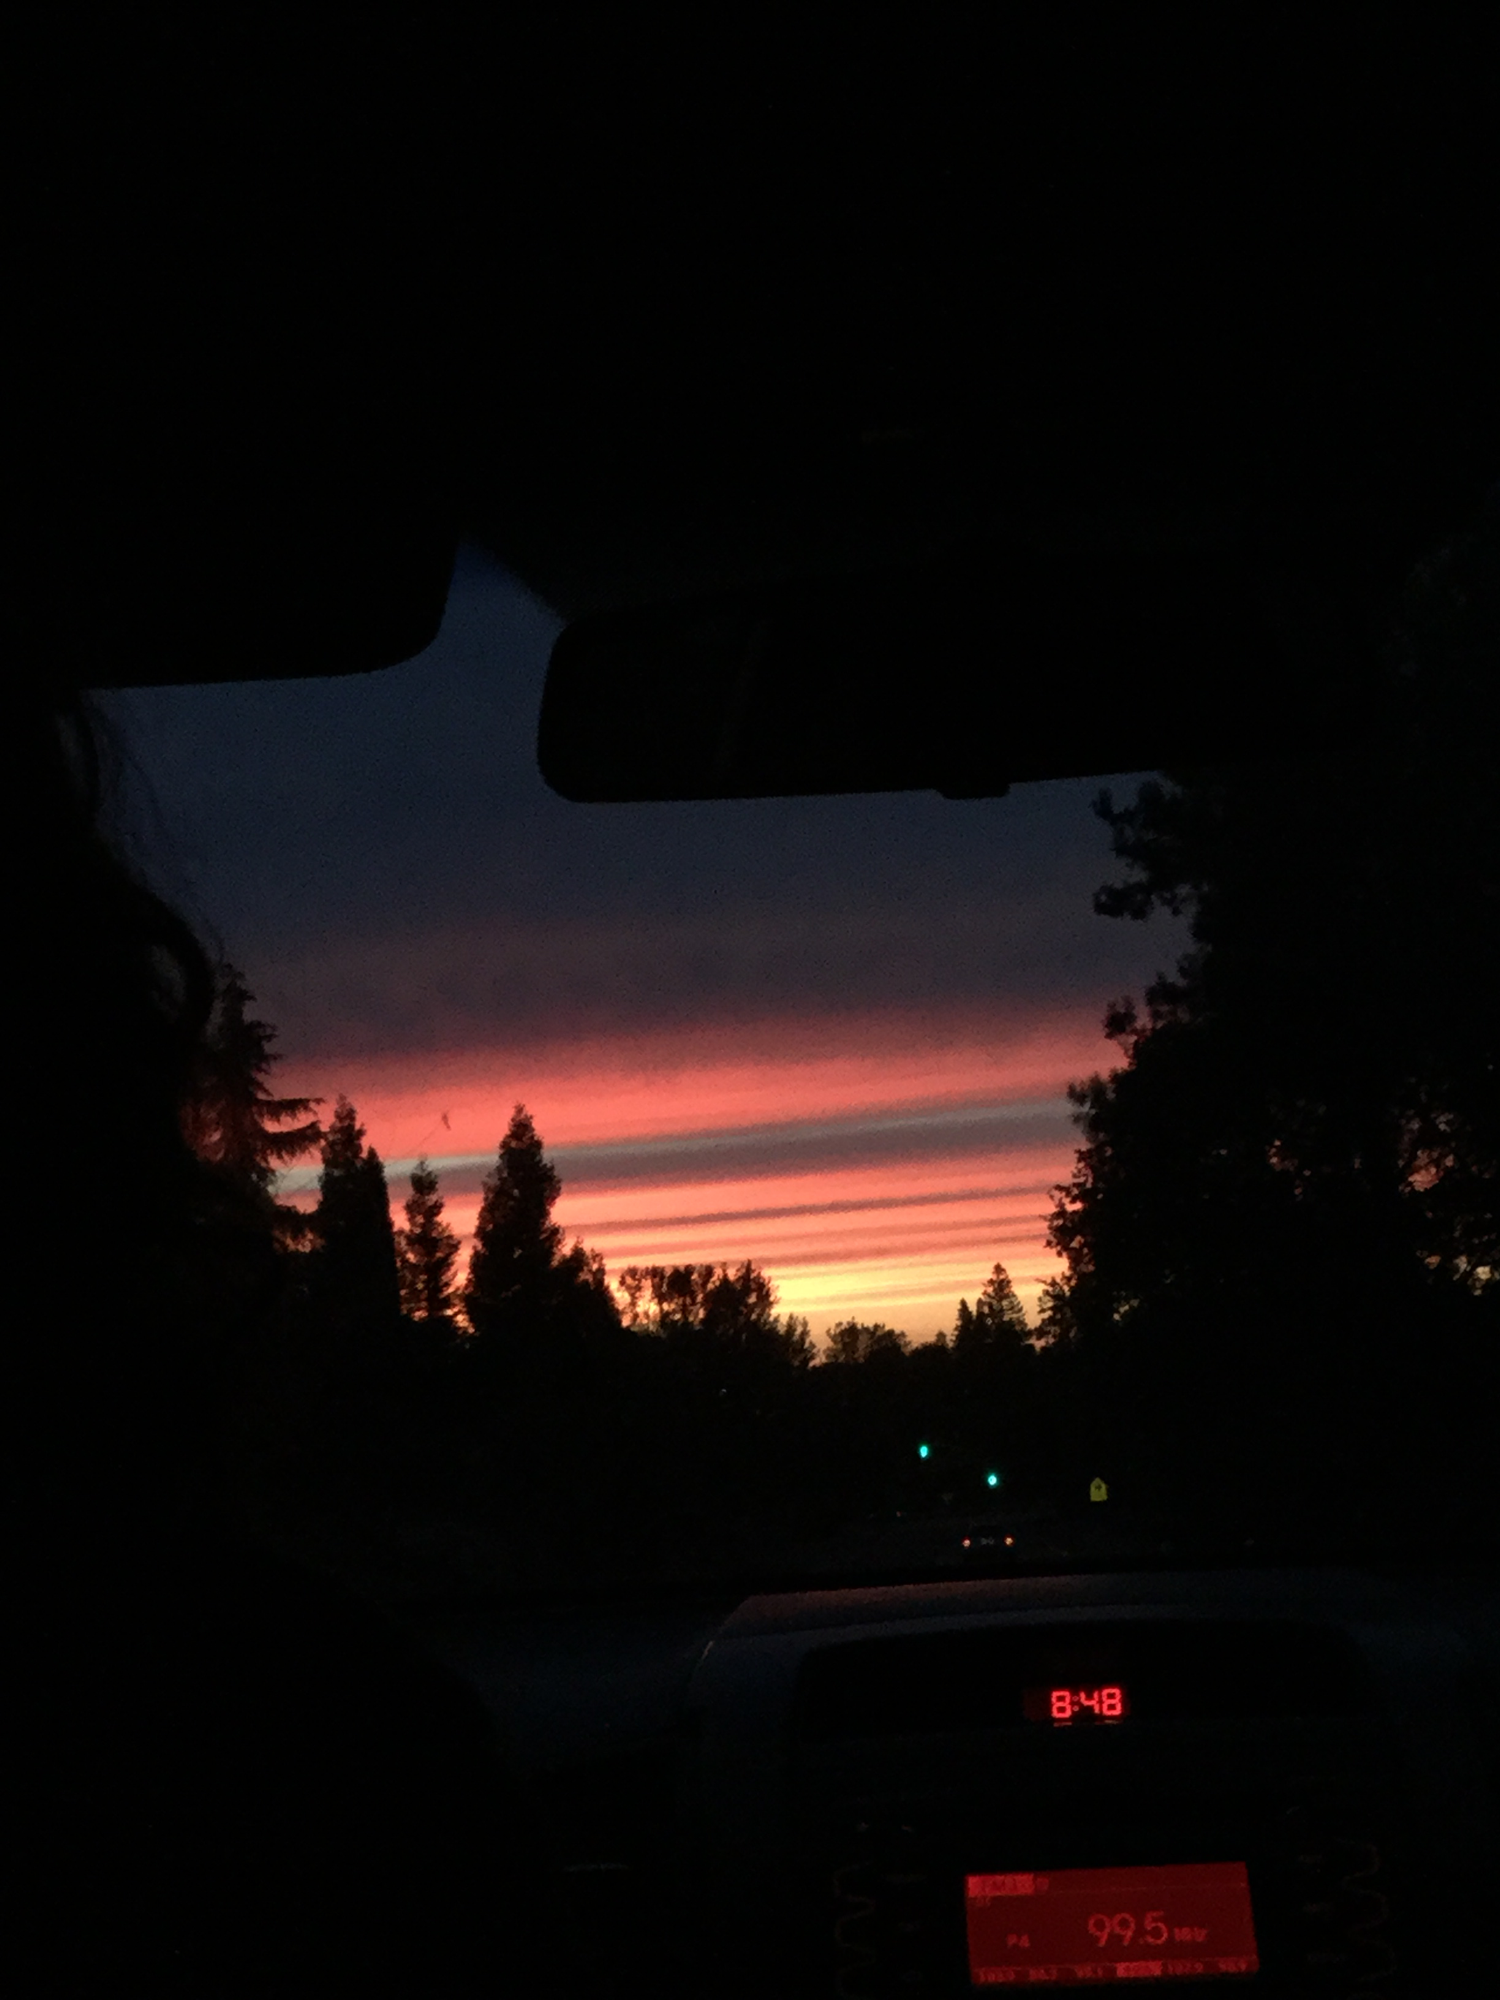 Sunset on Thursday, I couldn't get a really good photo because I was in the car